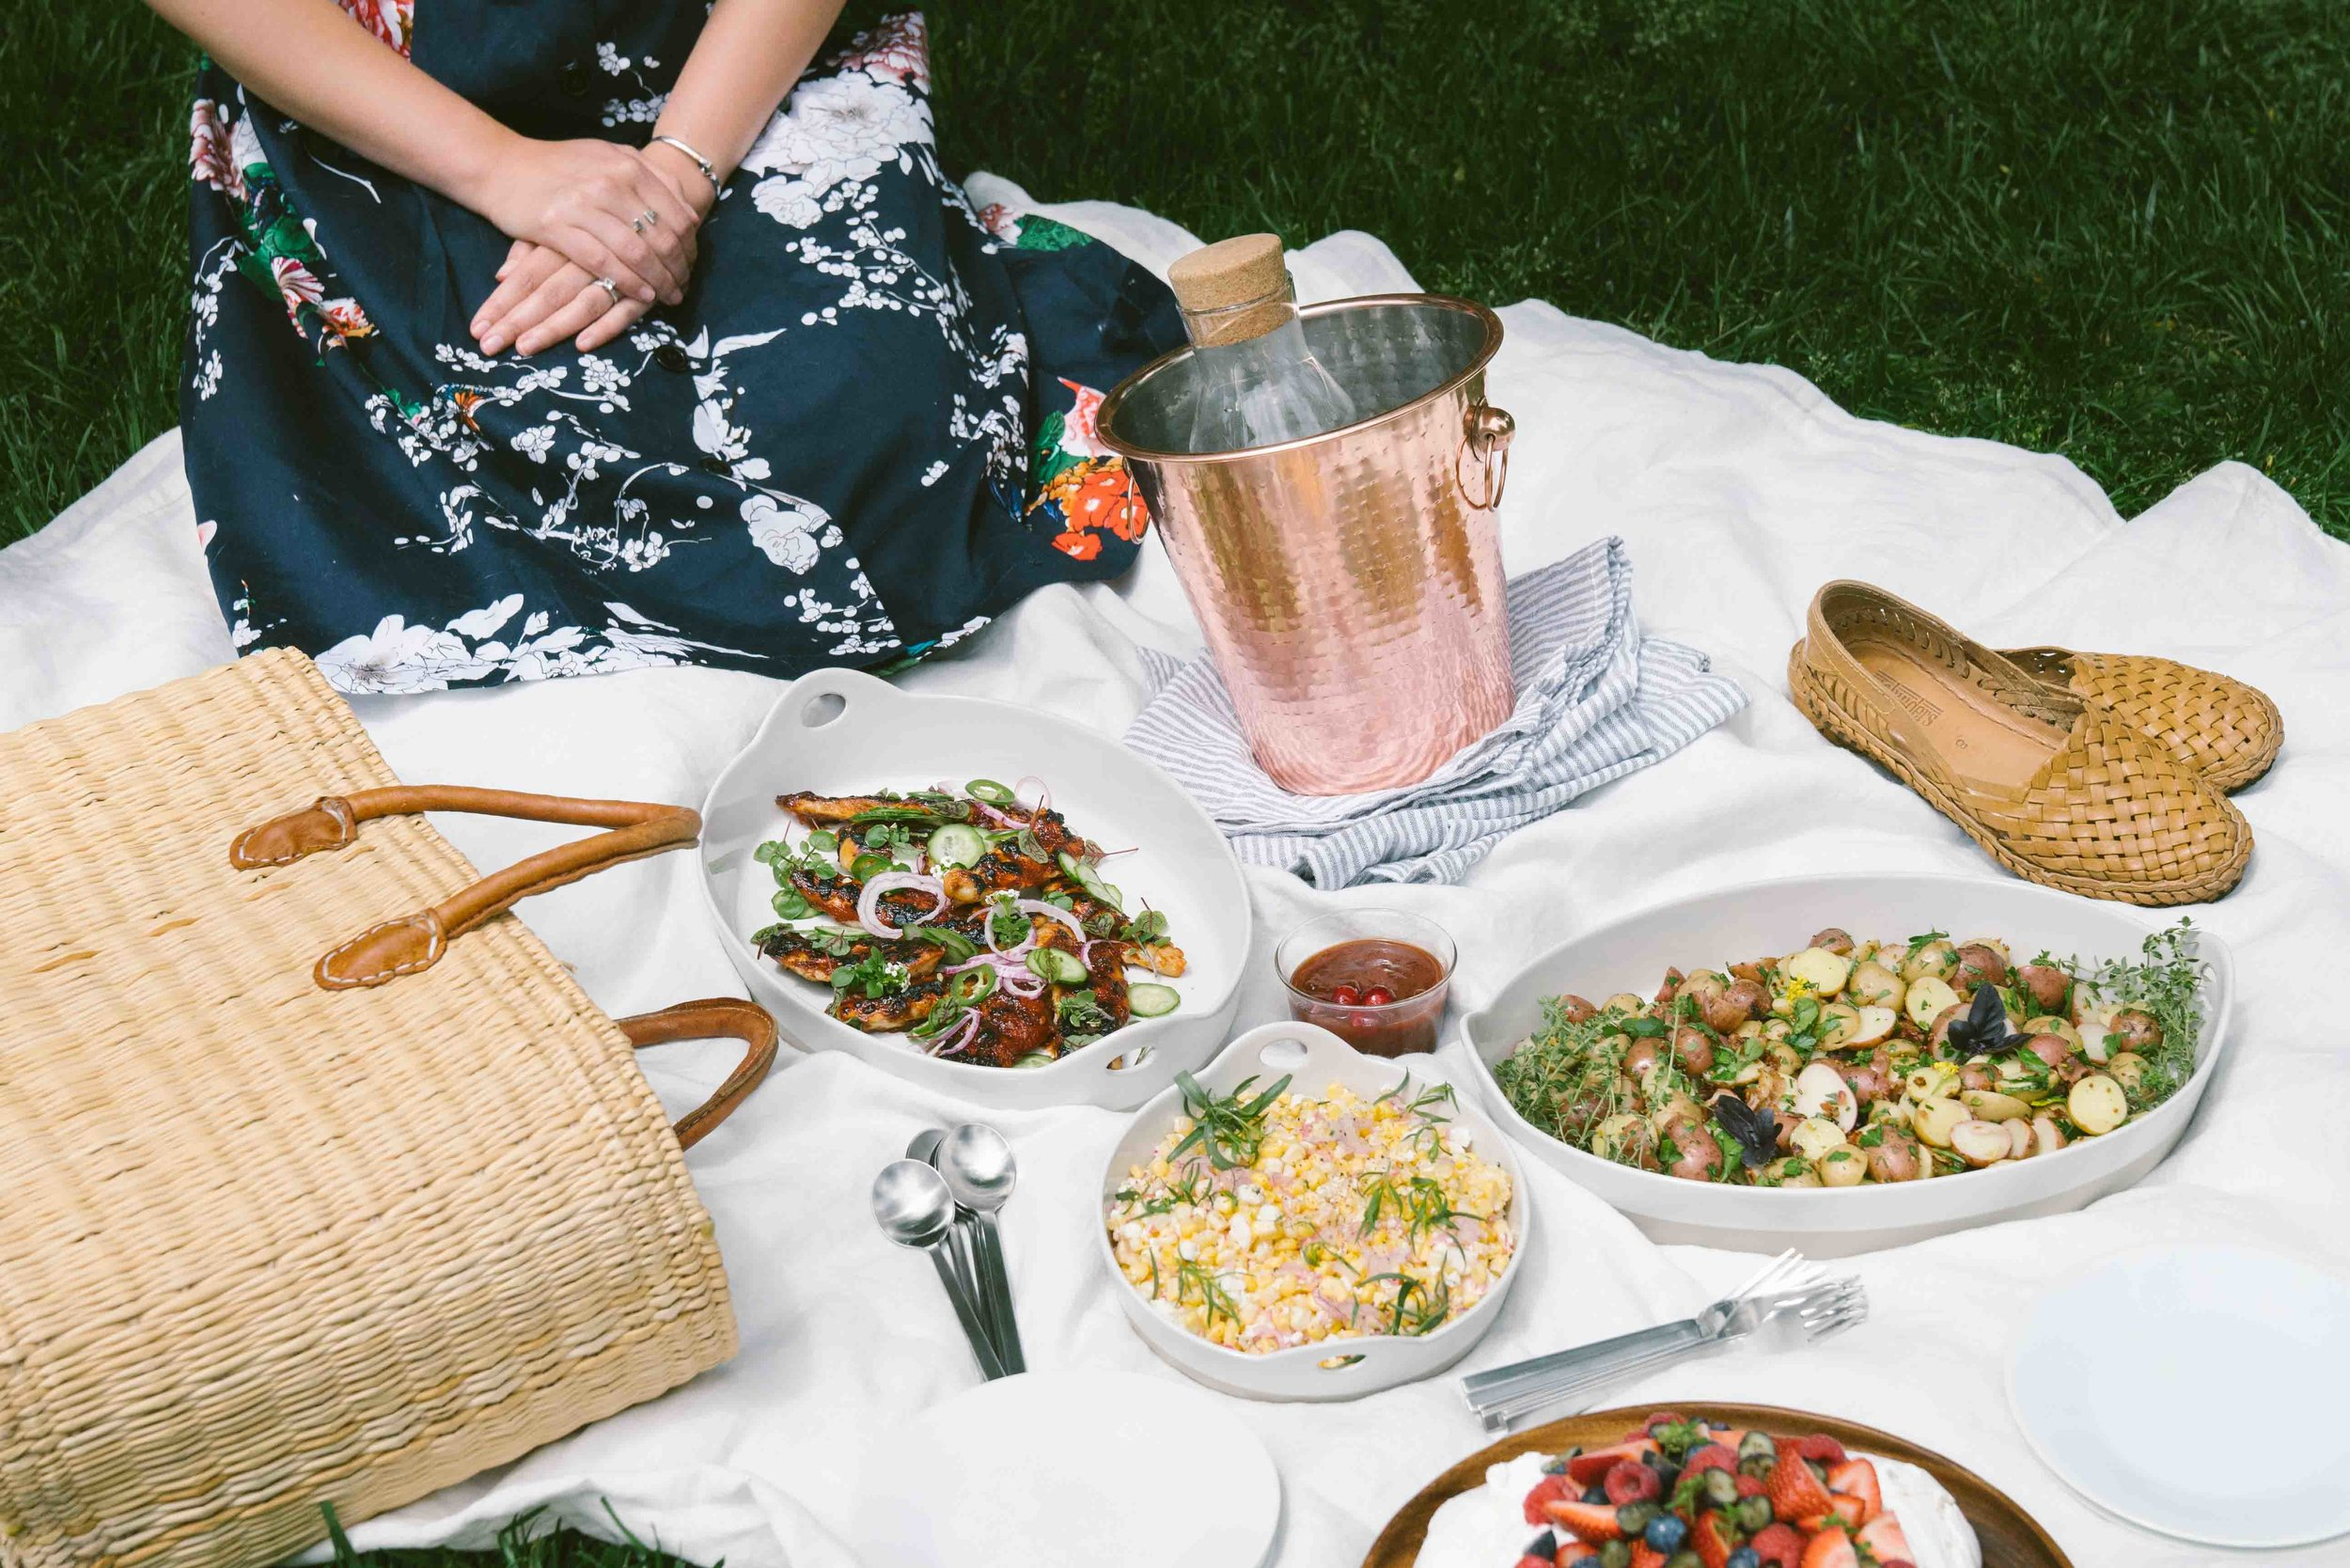 5 Healthy Picnic Swaps For Better Nutrition